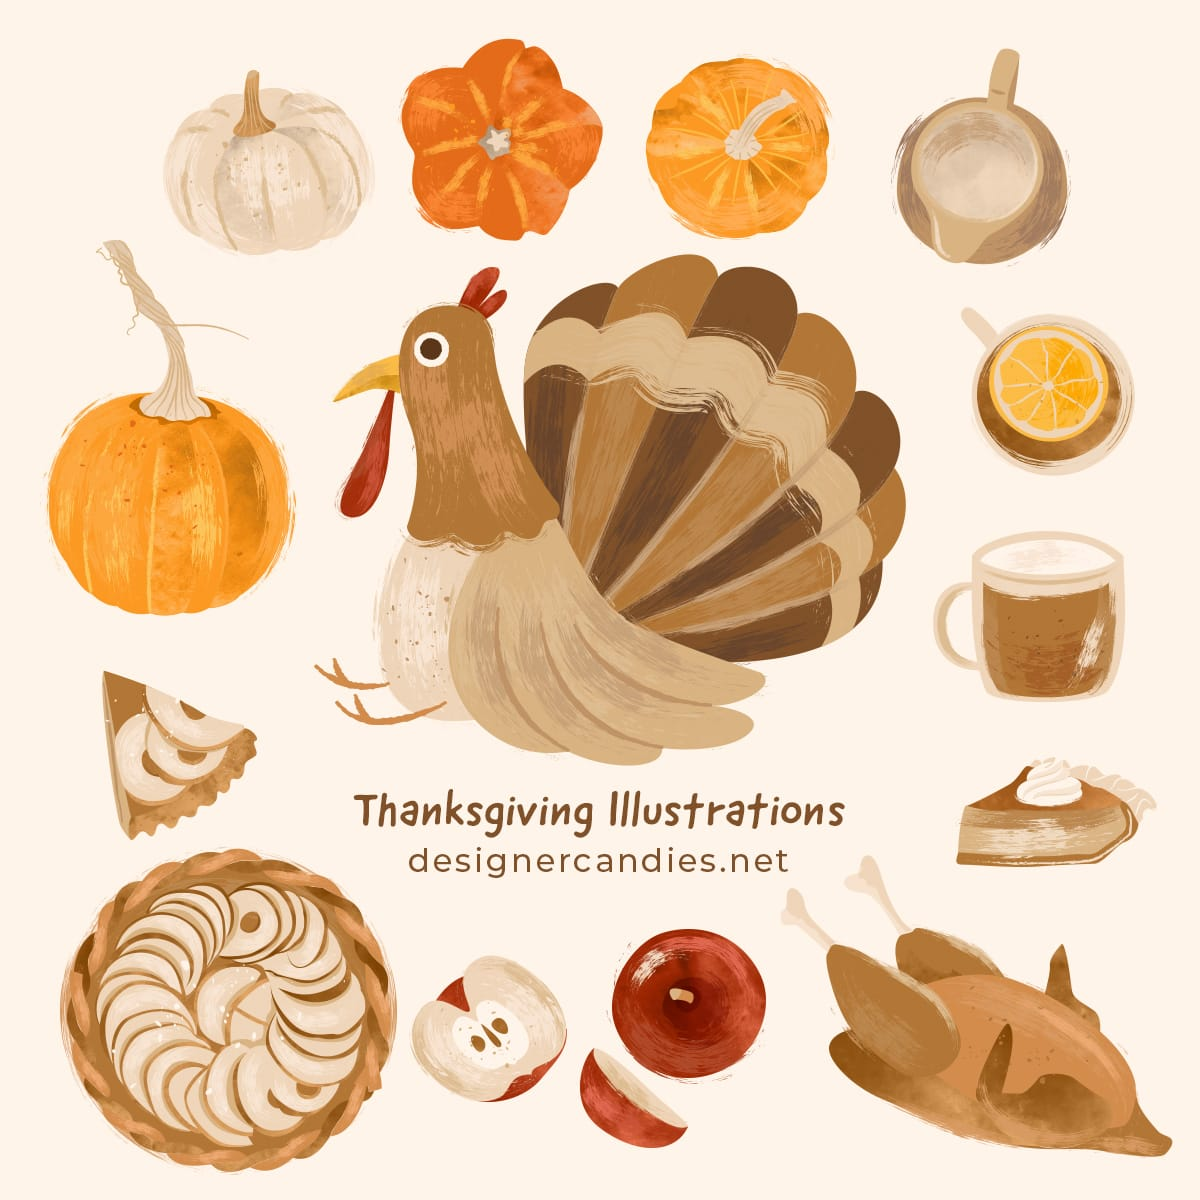 Thanksgiving Vector Illustrations